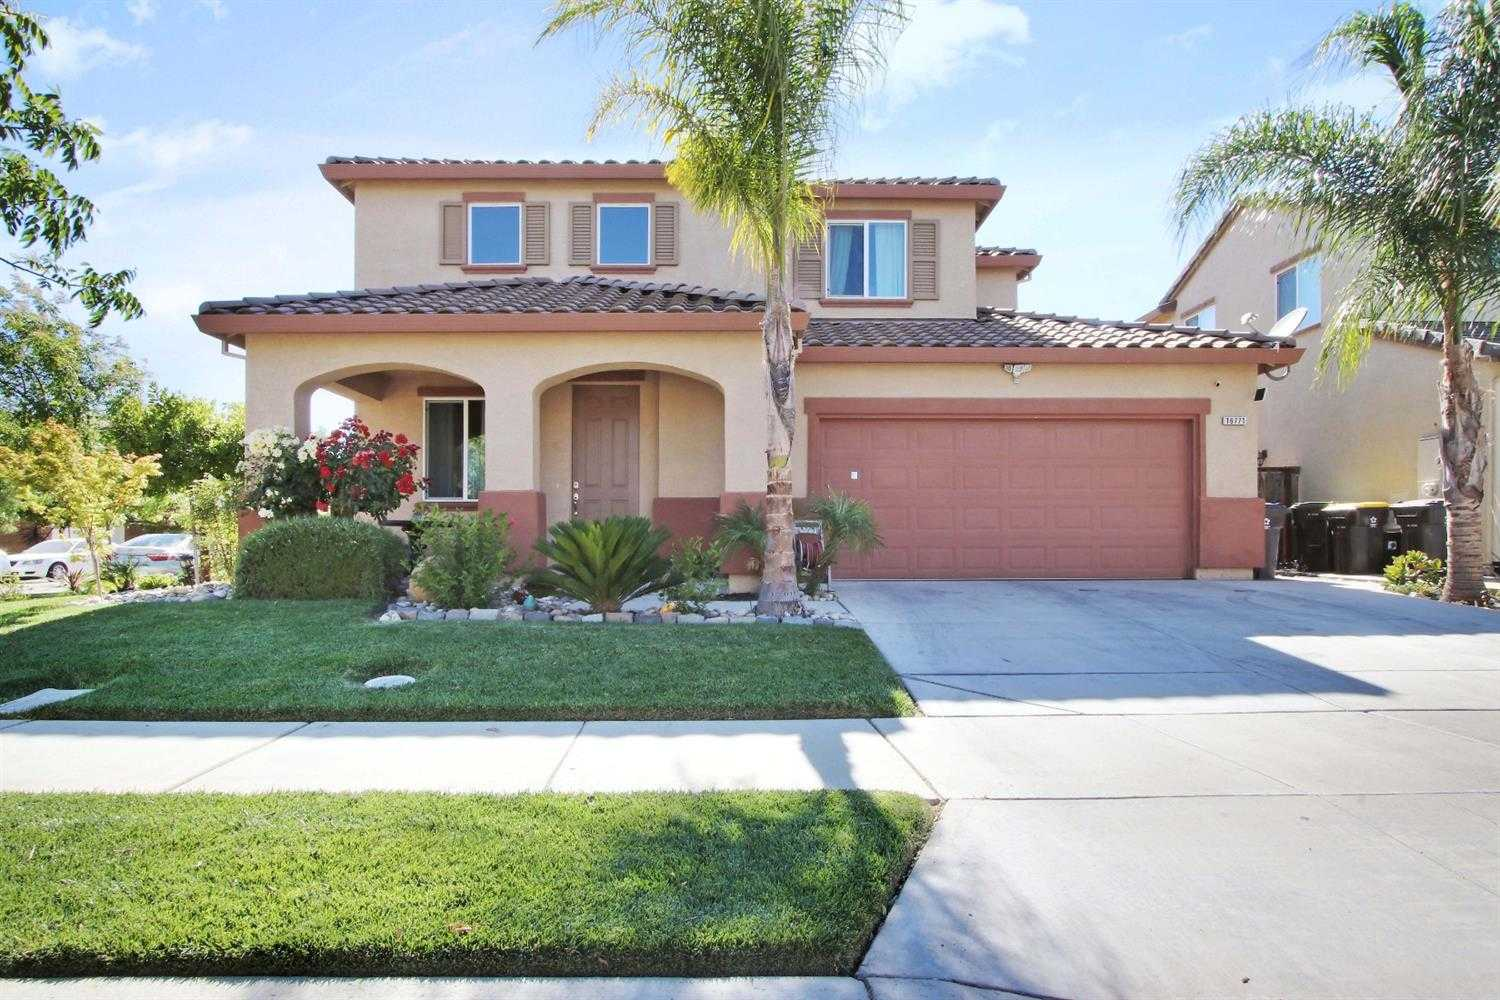 $420,000 - 3Br/3Ba -  for Sale in Lathrop